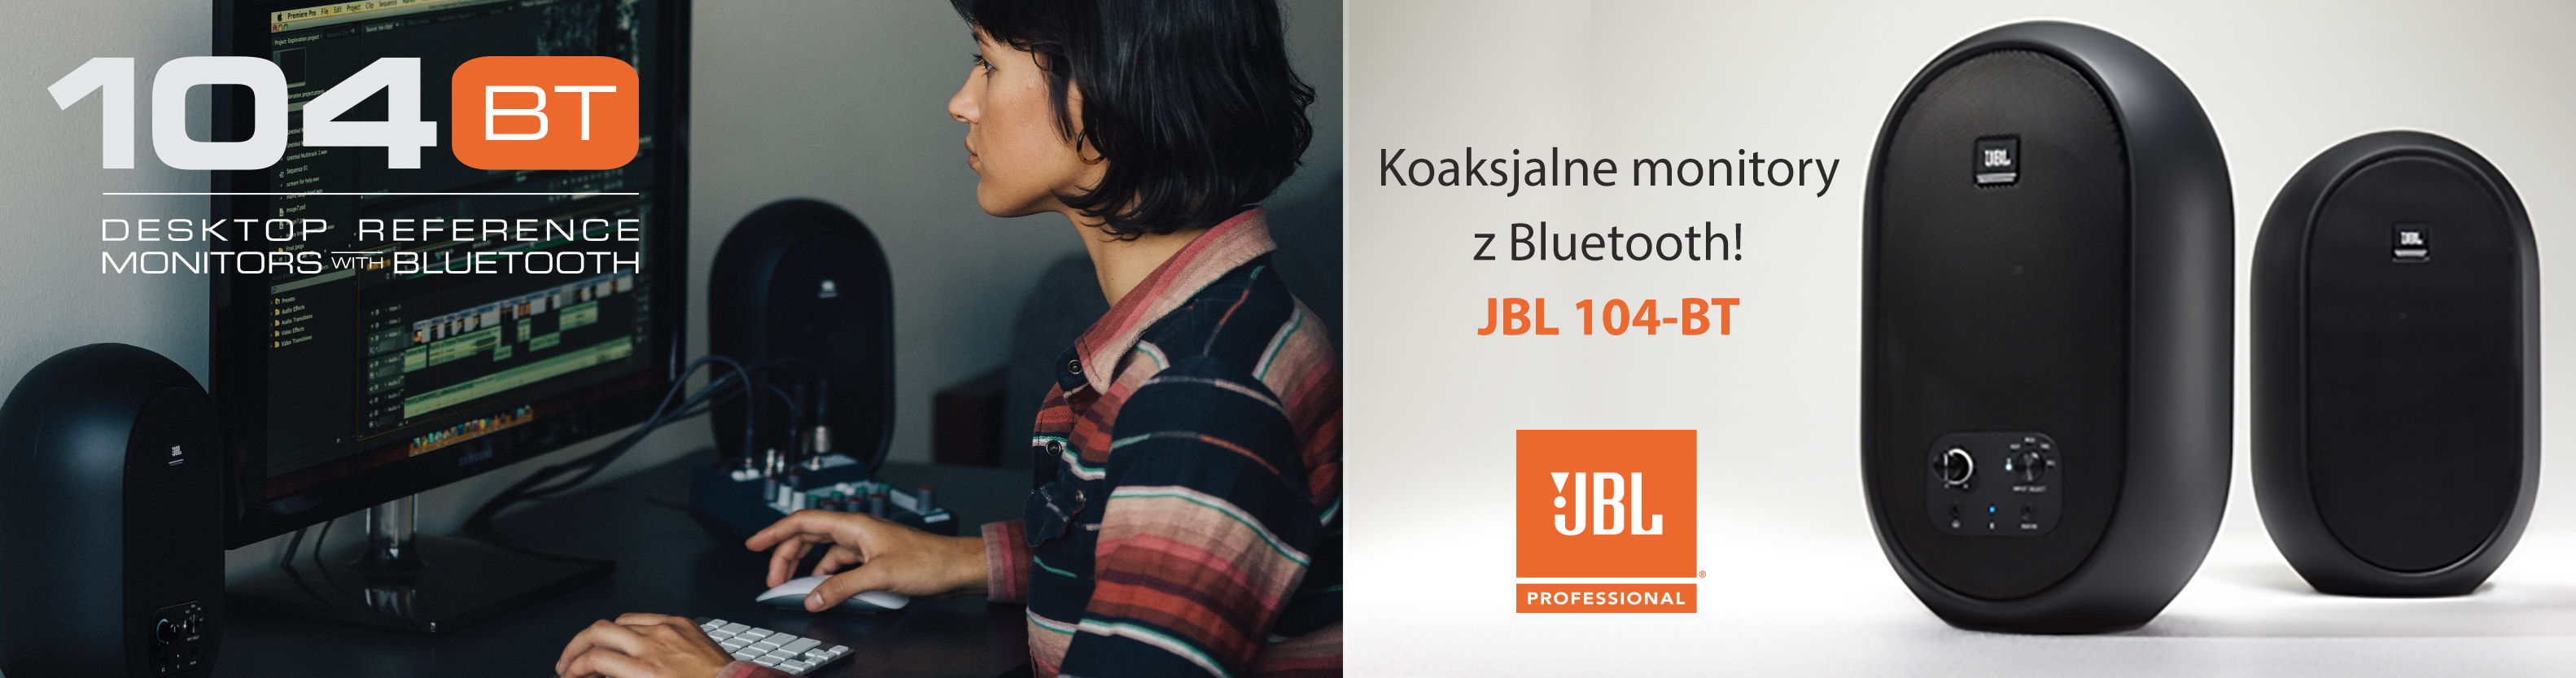 Koaksjalne monitory z Bluetooth! JBL 104-BT